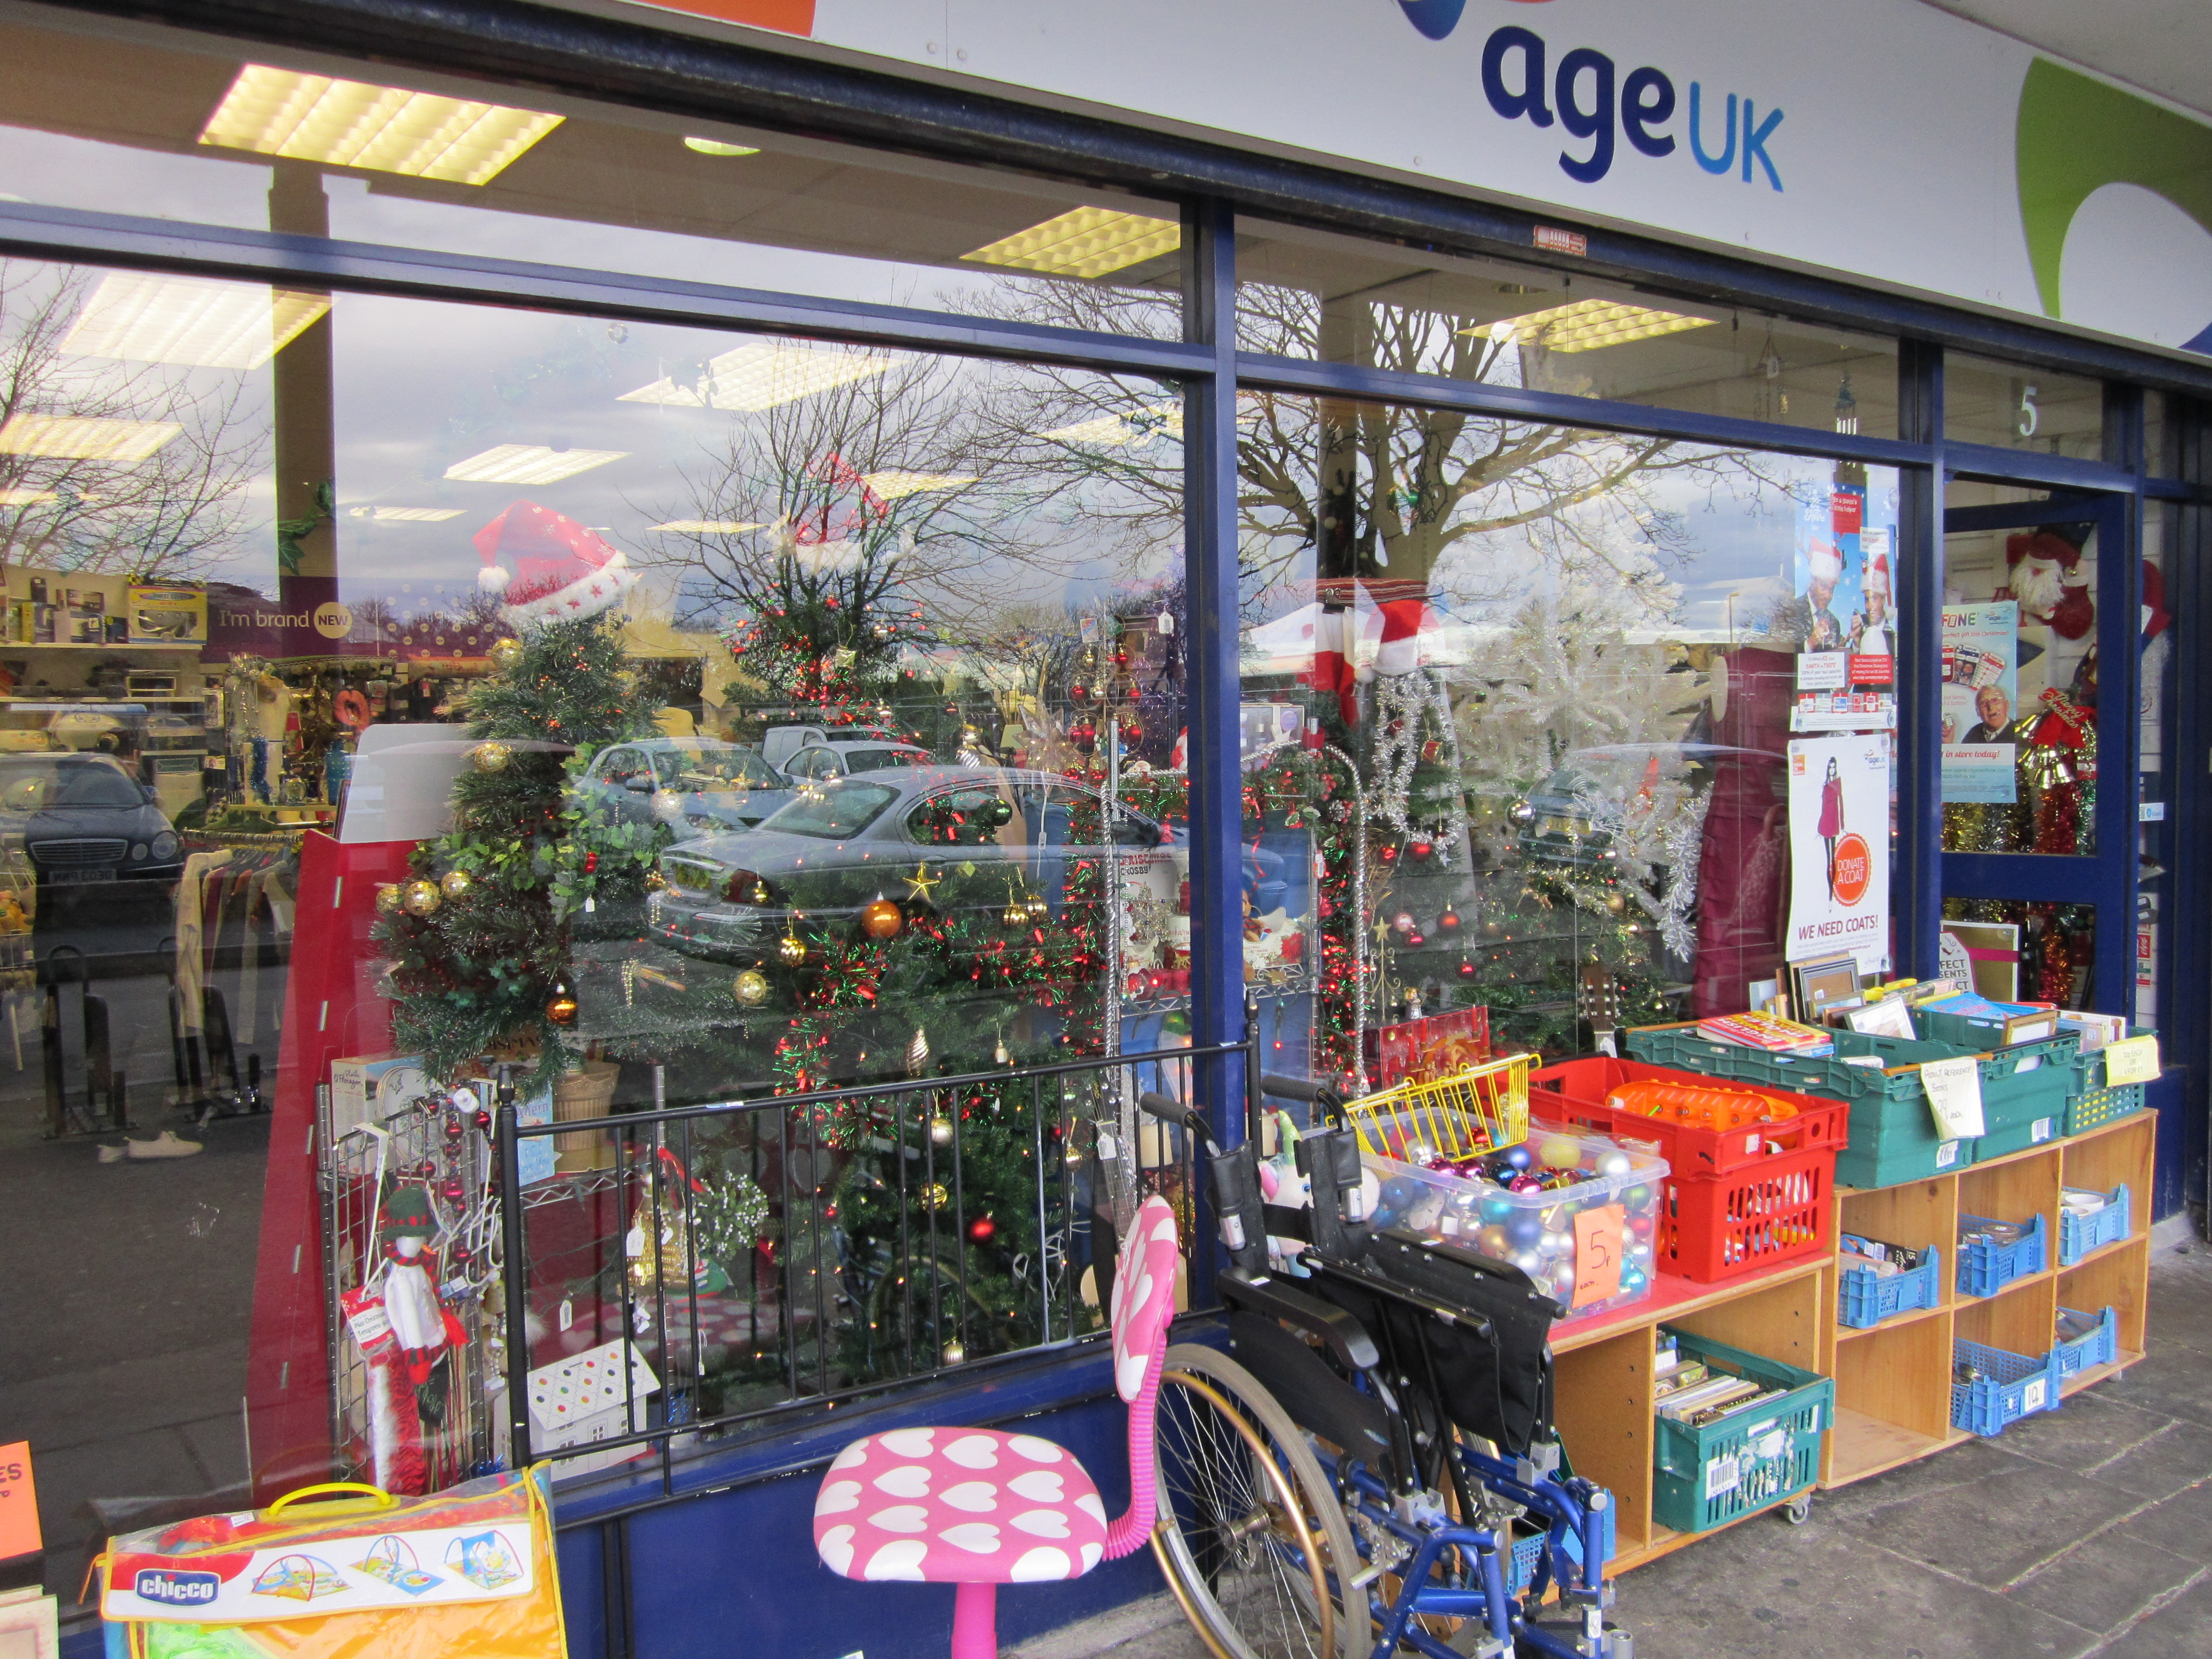 Age uk Charity Shop File:age uk Charity Shop on